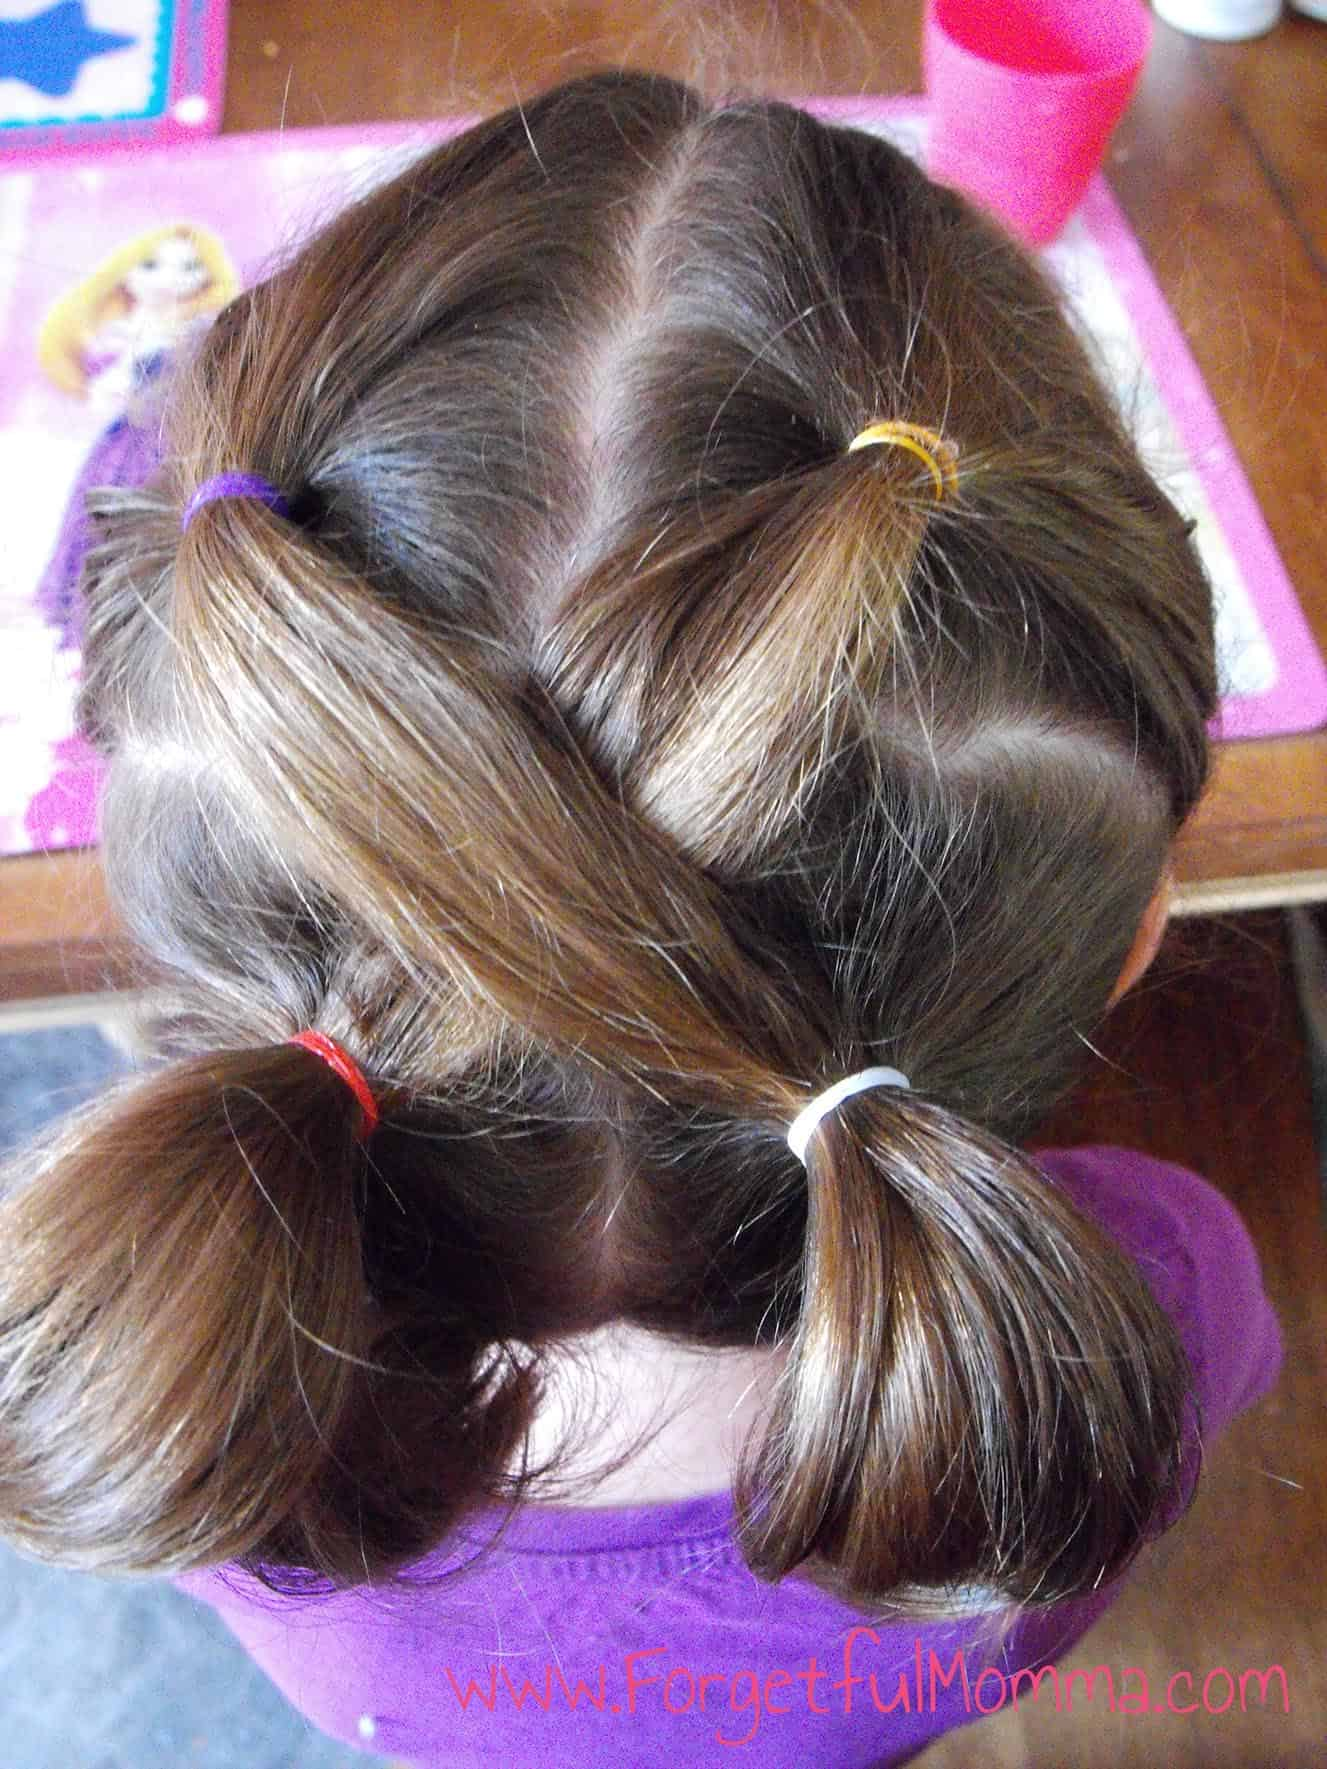 Hair Styles For Short Hair Little Girl Back To School Hair For Little Girls Forgetful Momma